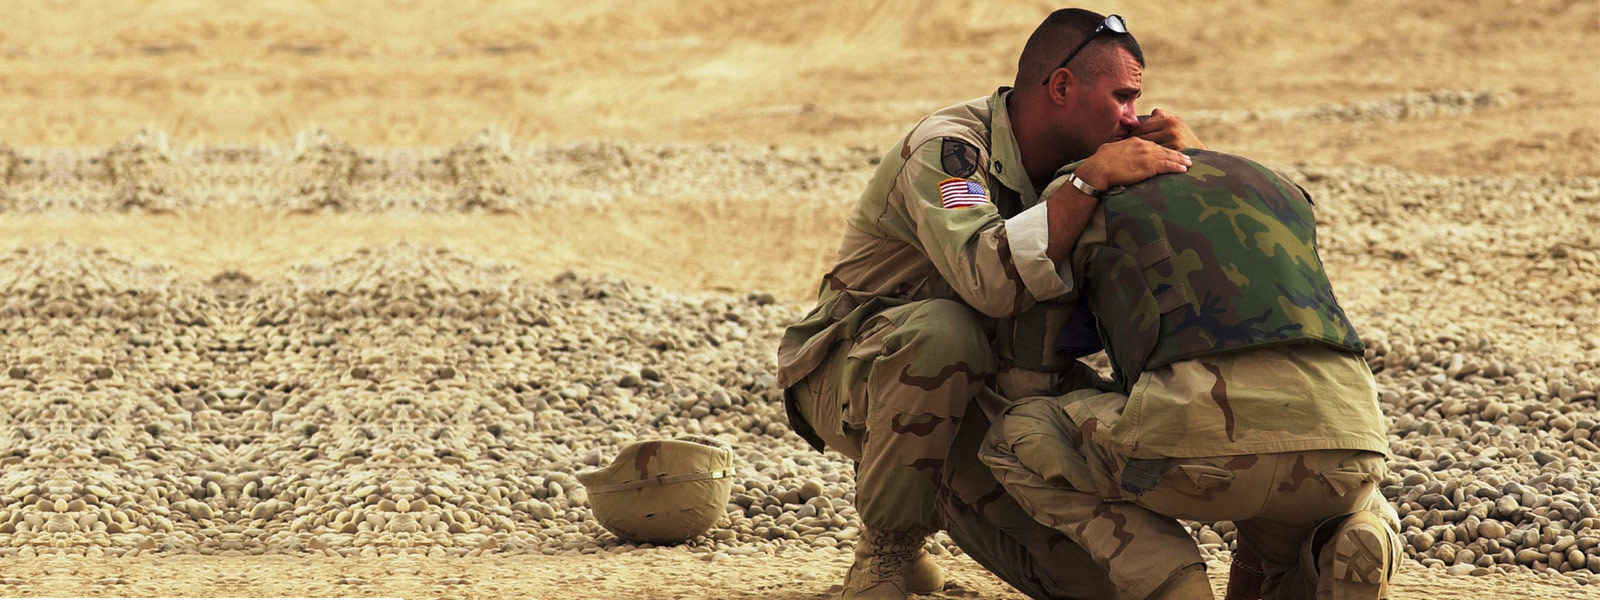 100% Of Your Gift Helps To End The Suffering Of A Soldier With Combat PTSD! image